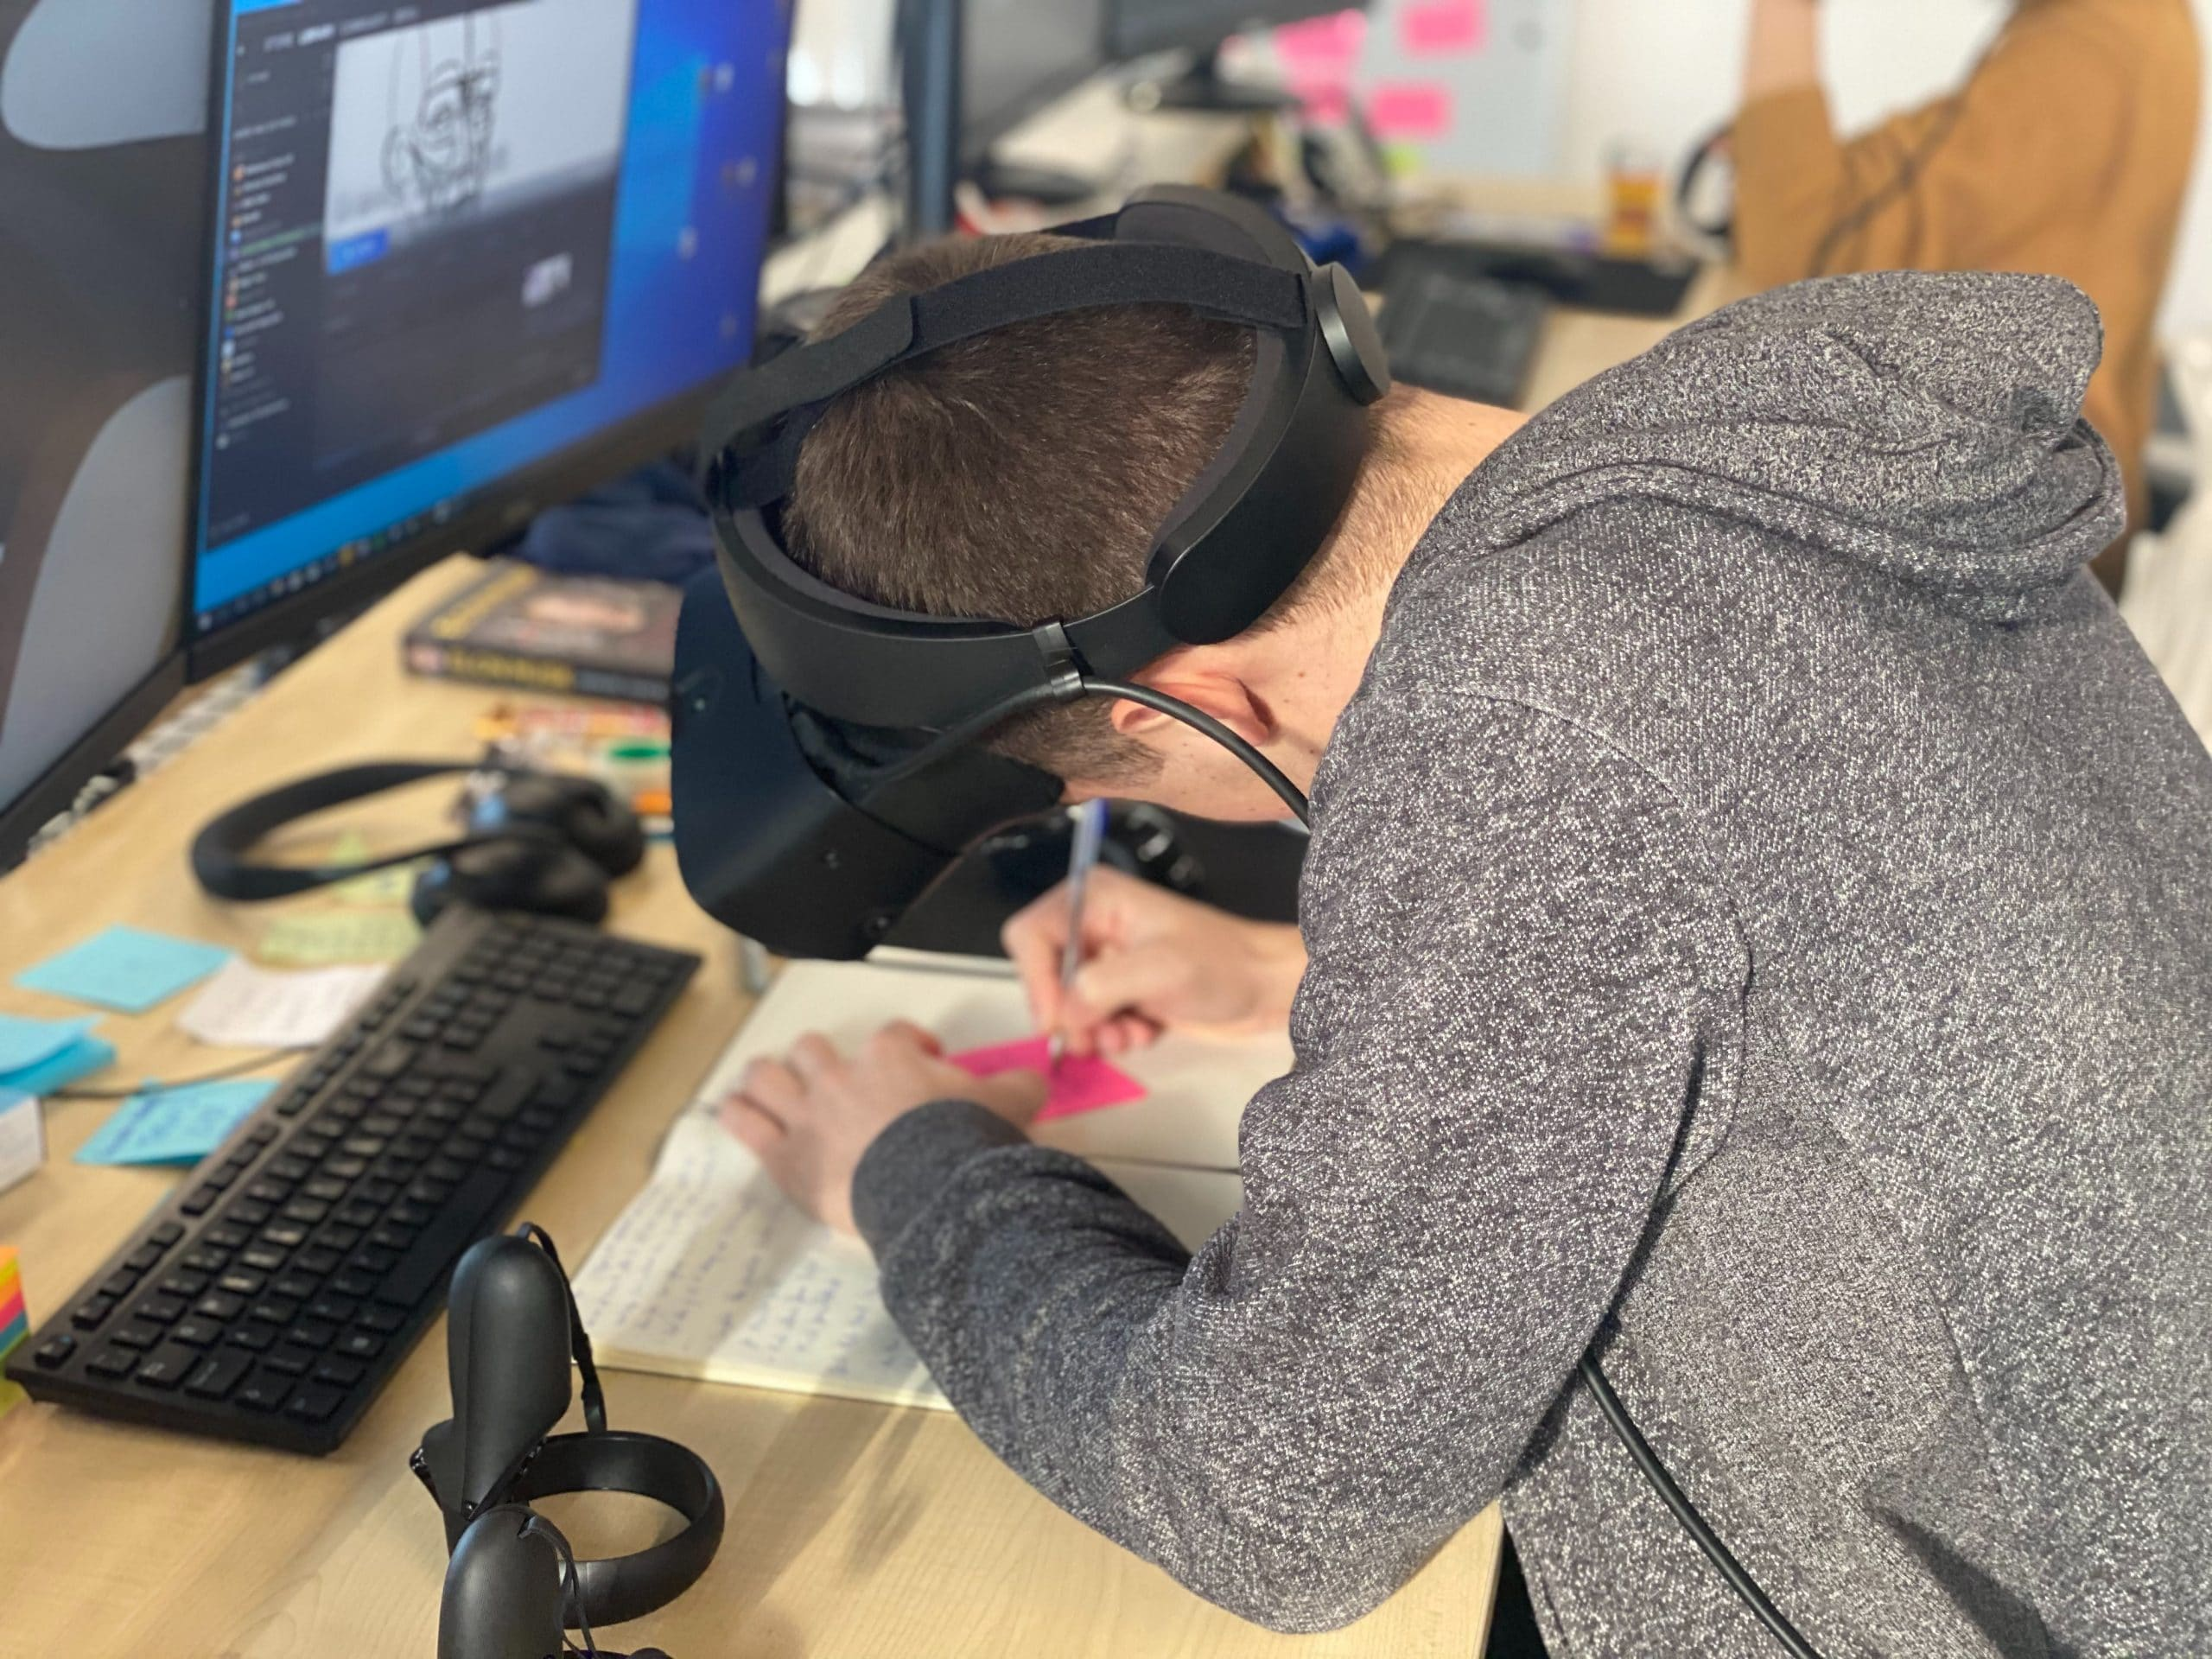 VR being used at the desk by designers at the Gravity Sketch office